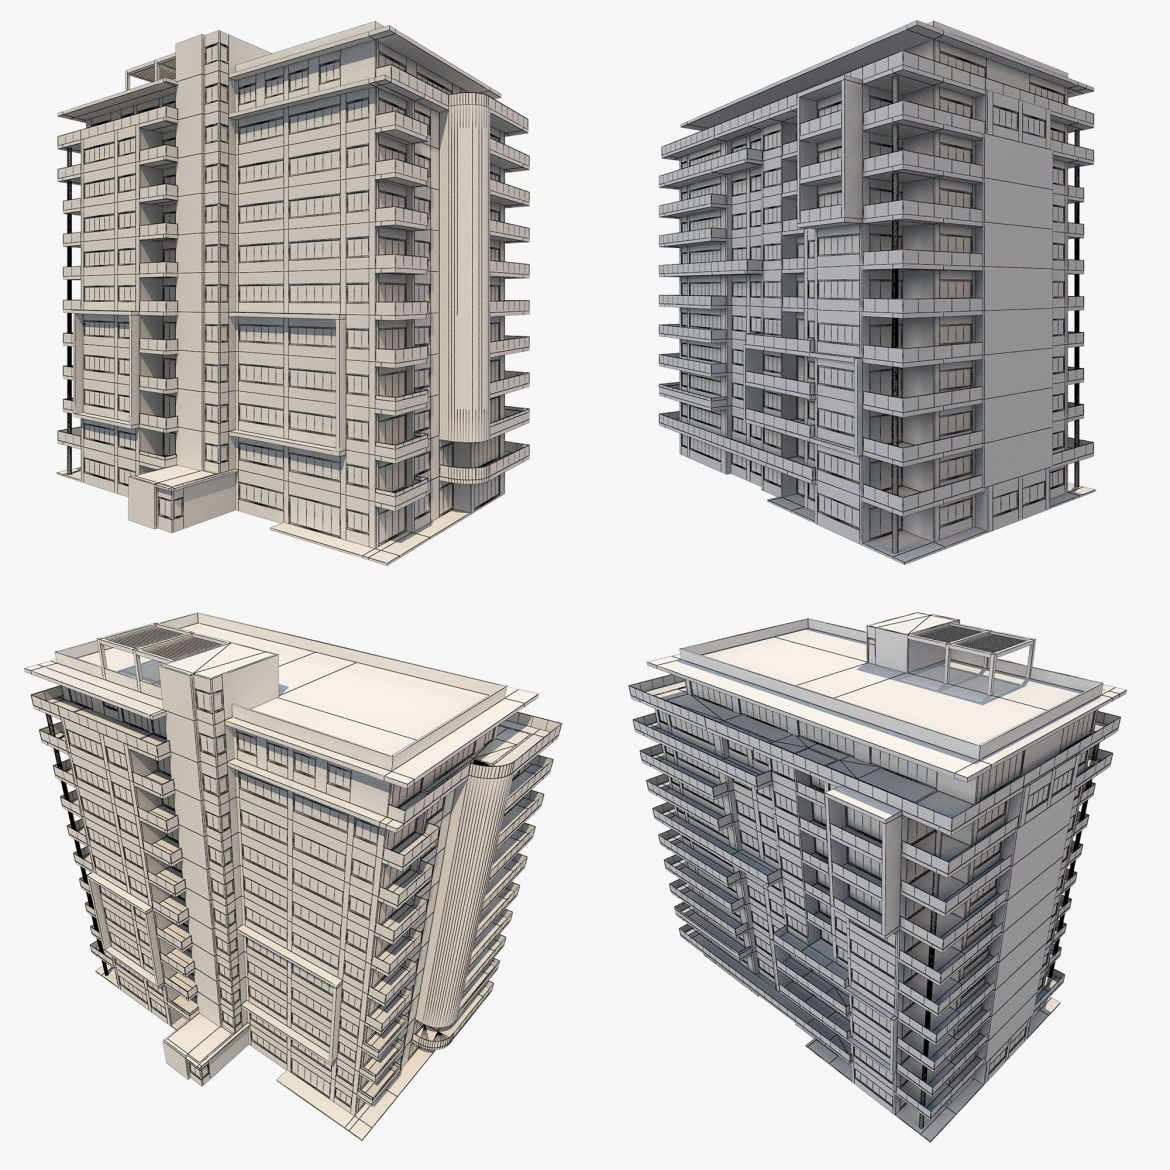 apartment building_61 3d model 3ds blend c4d fbx max ds max plugin ma mb obj 303420